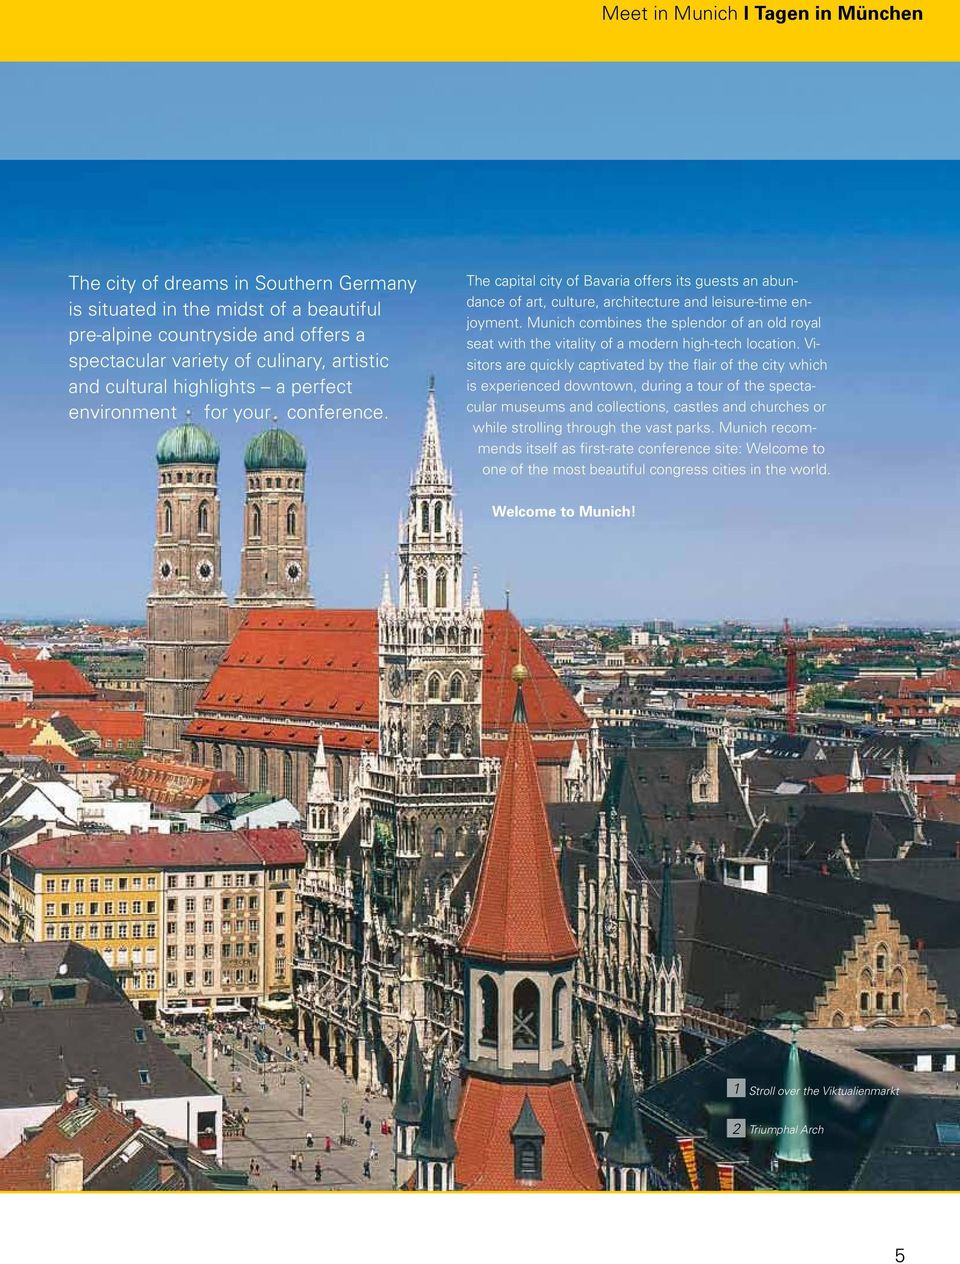 Munich combines the splendor of an old royal seat with the vitality of a modern high-tech location.